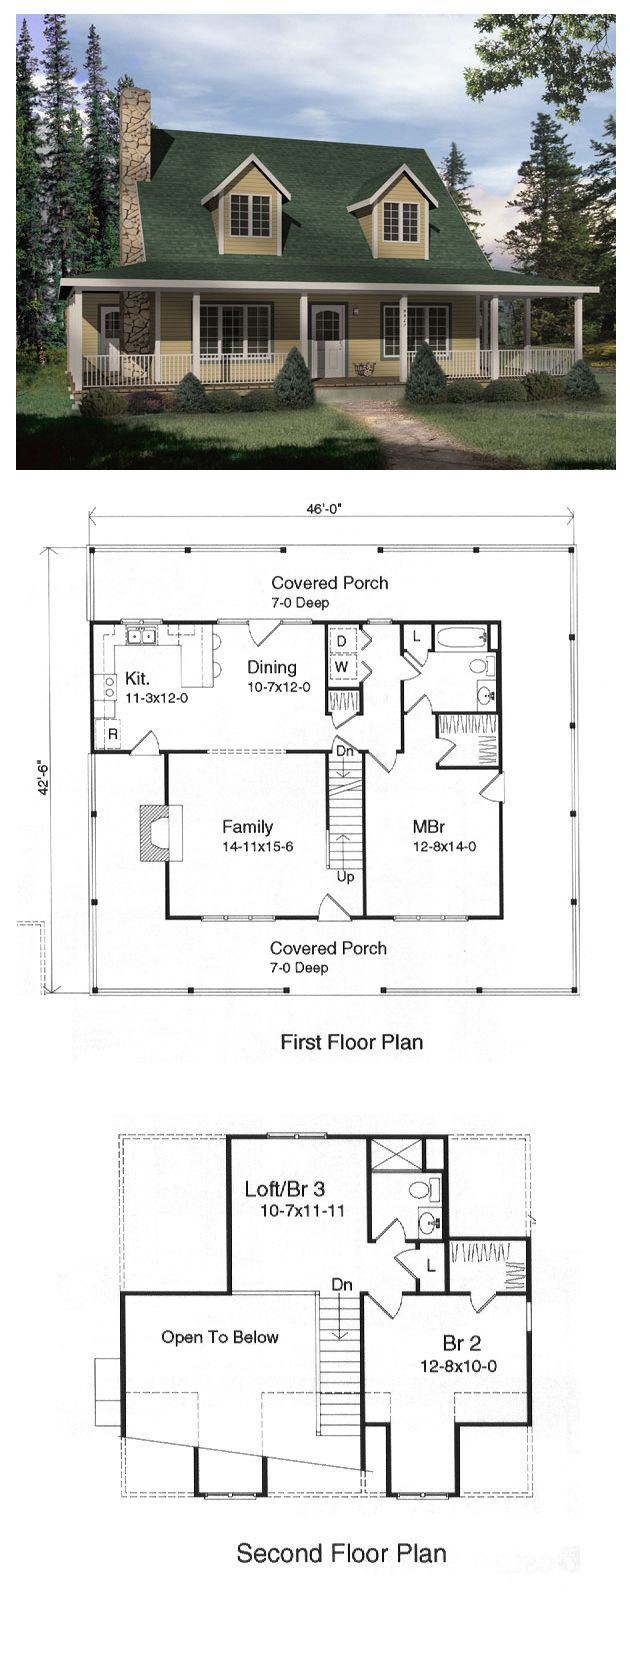 CapeCod Style COOL House Plan ID chp 15961